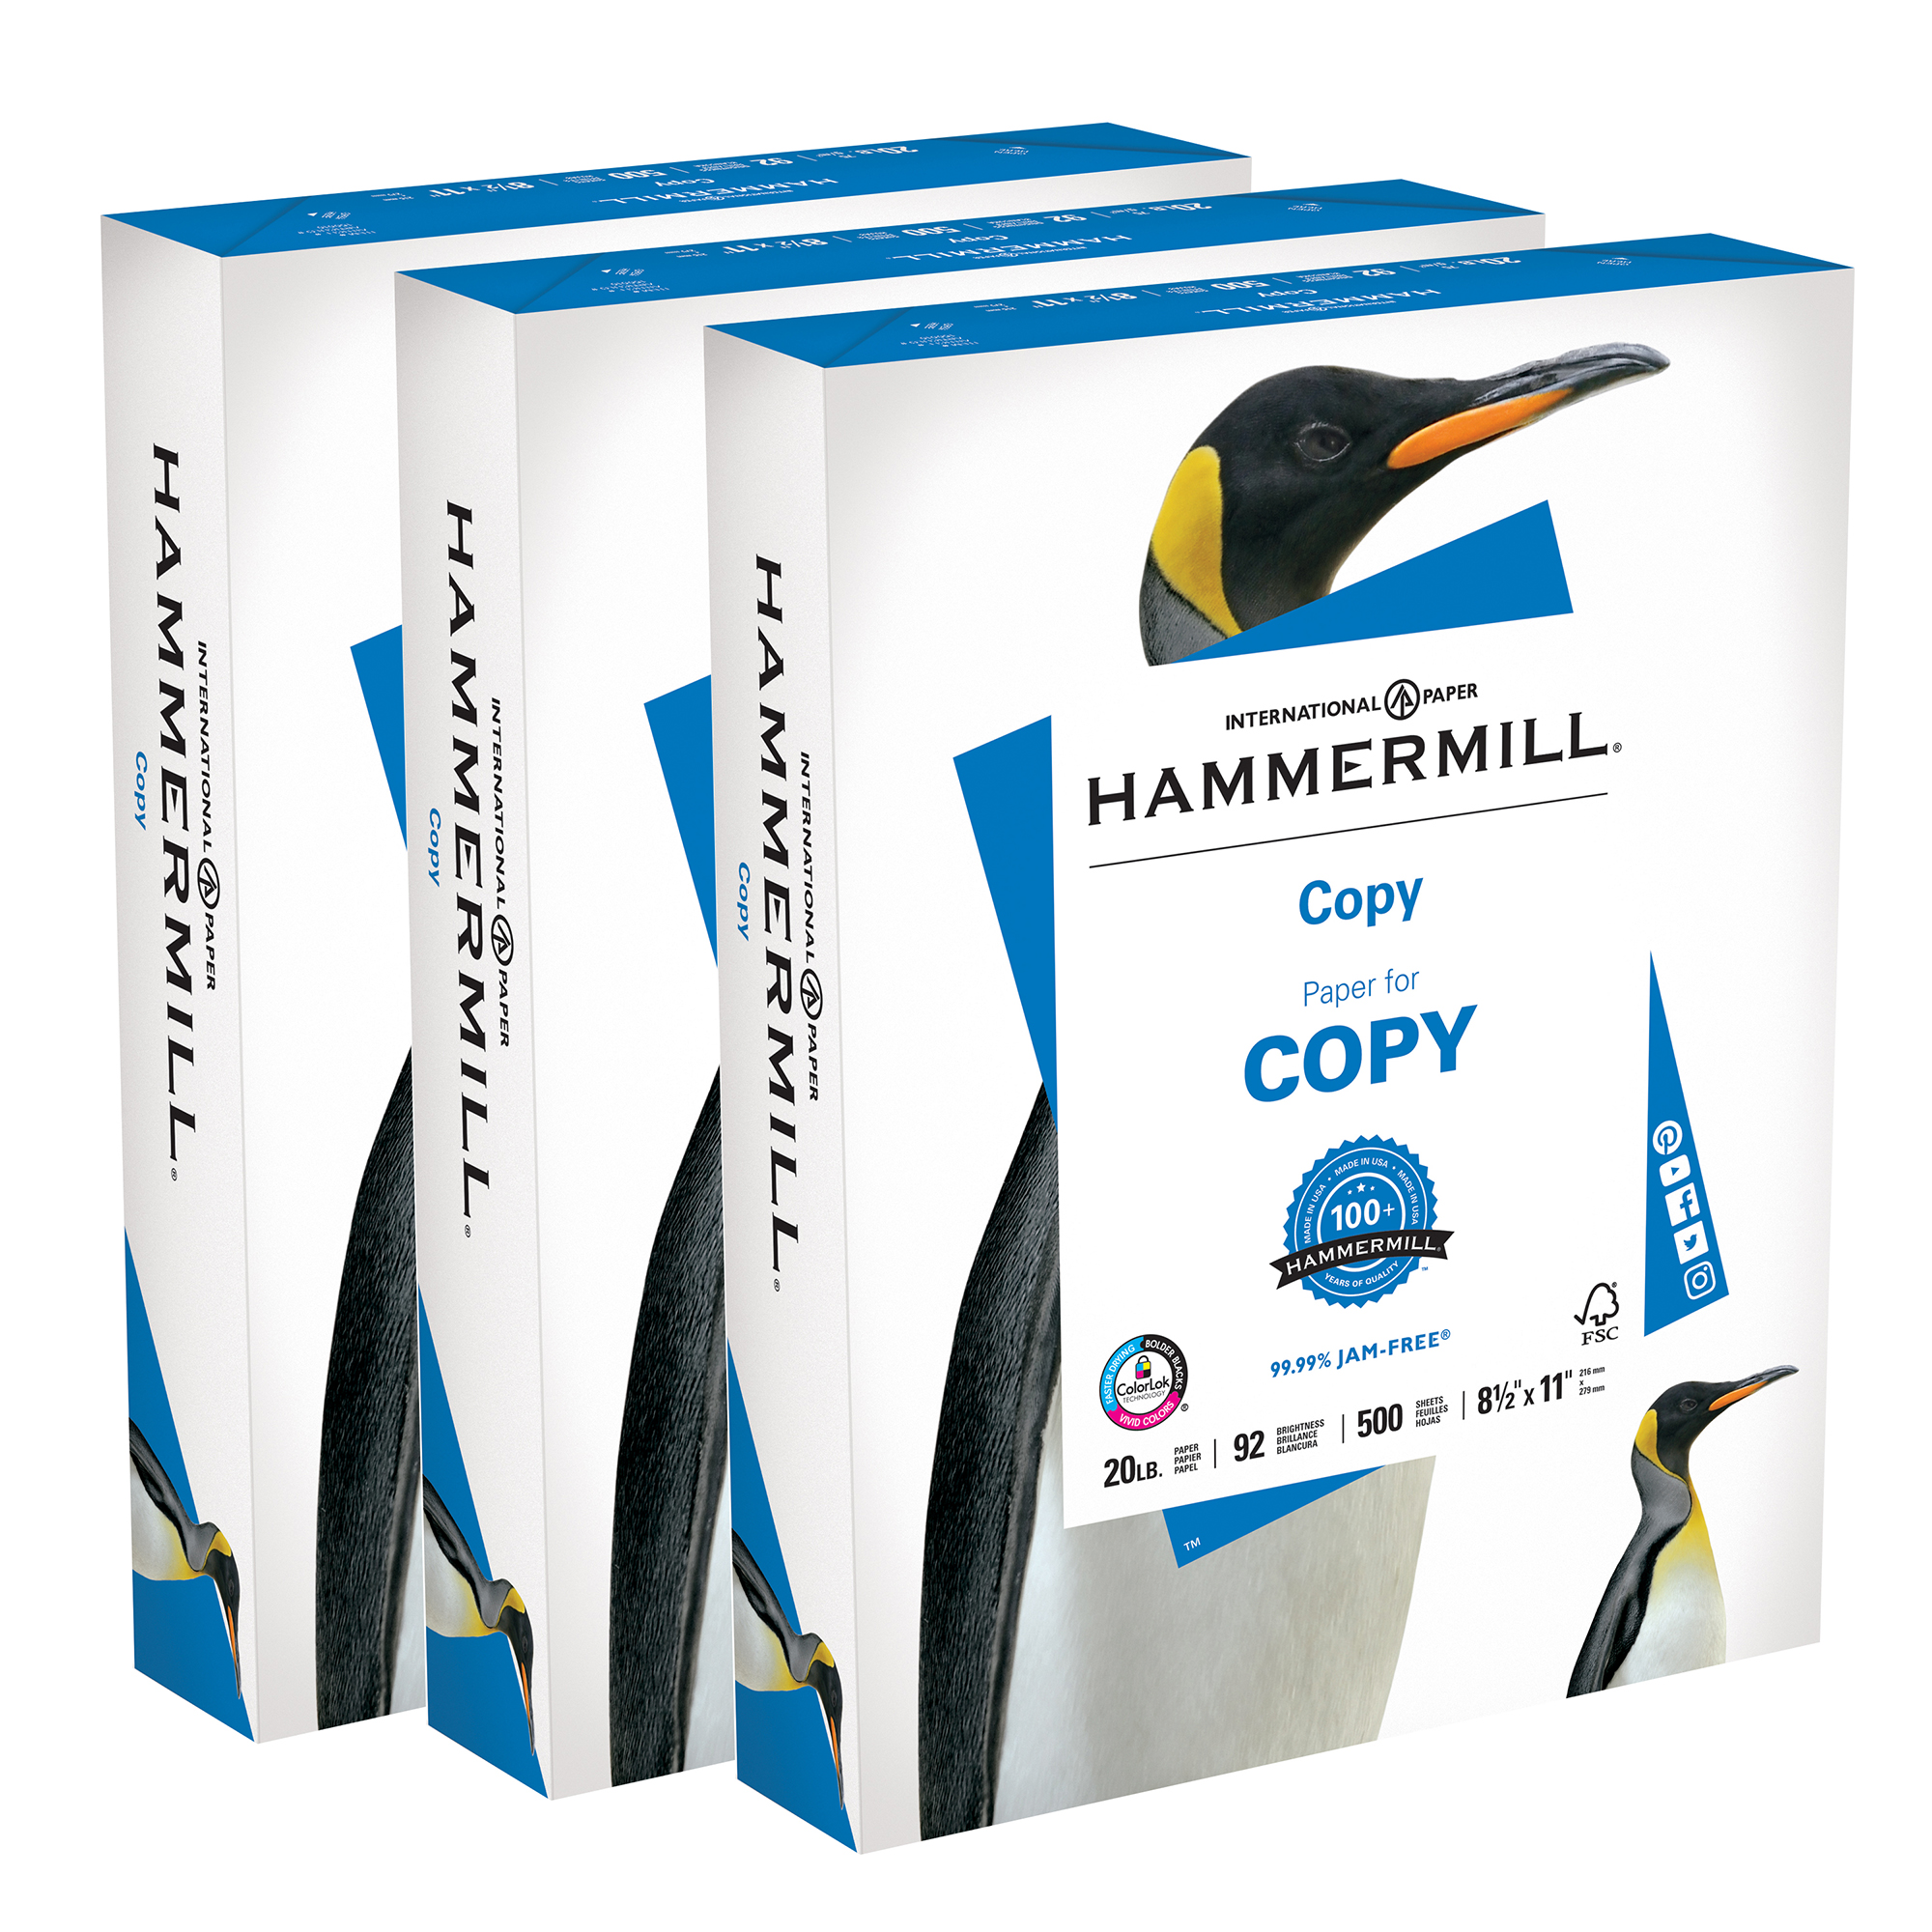 (3 Pack) Hammermill Copy Paper, 8.5x11In, 20 lb, 92 Bright, 1 Ream, 500 Sheets